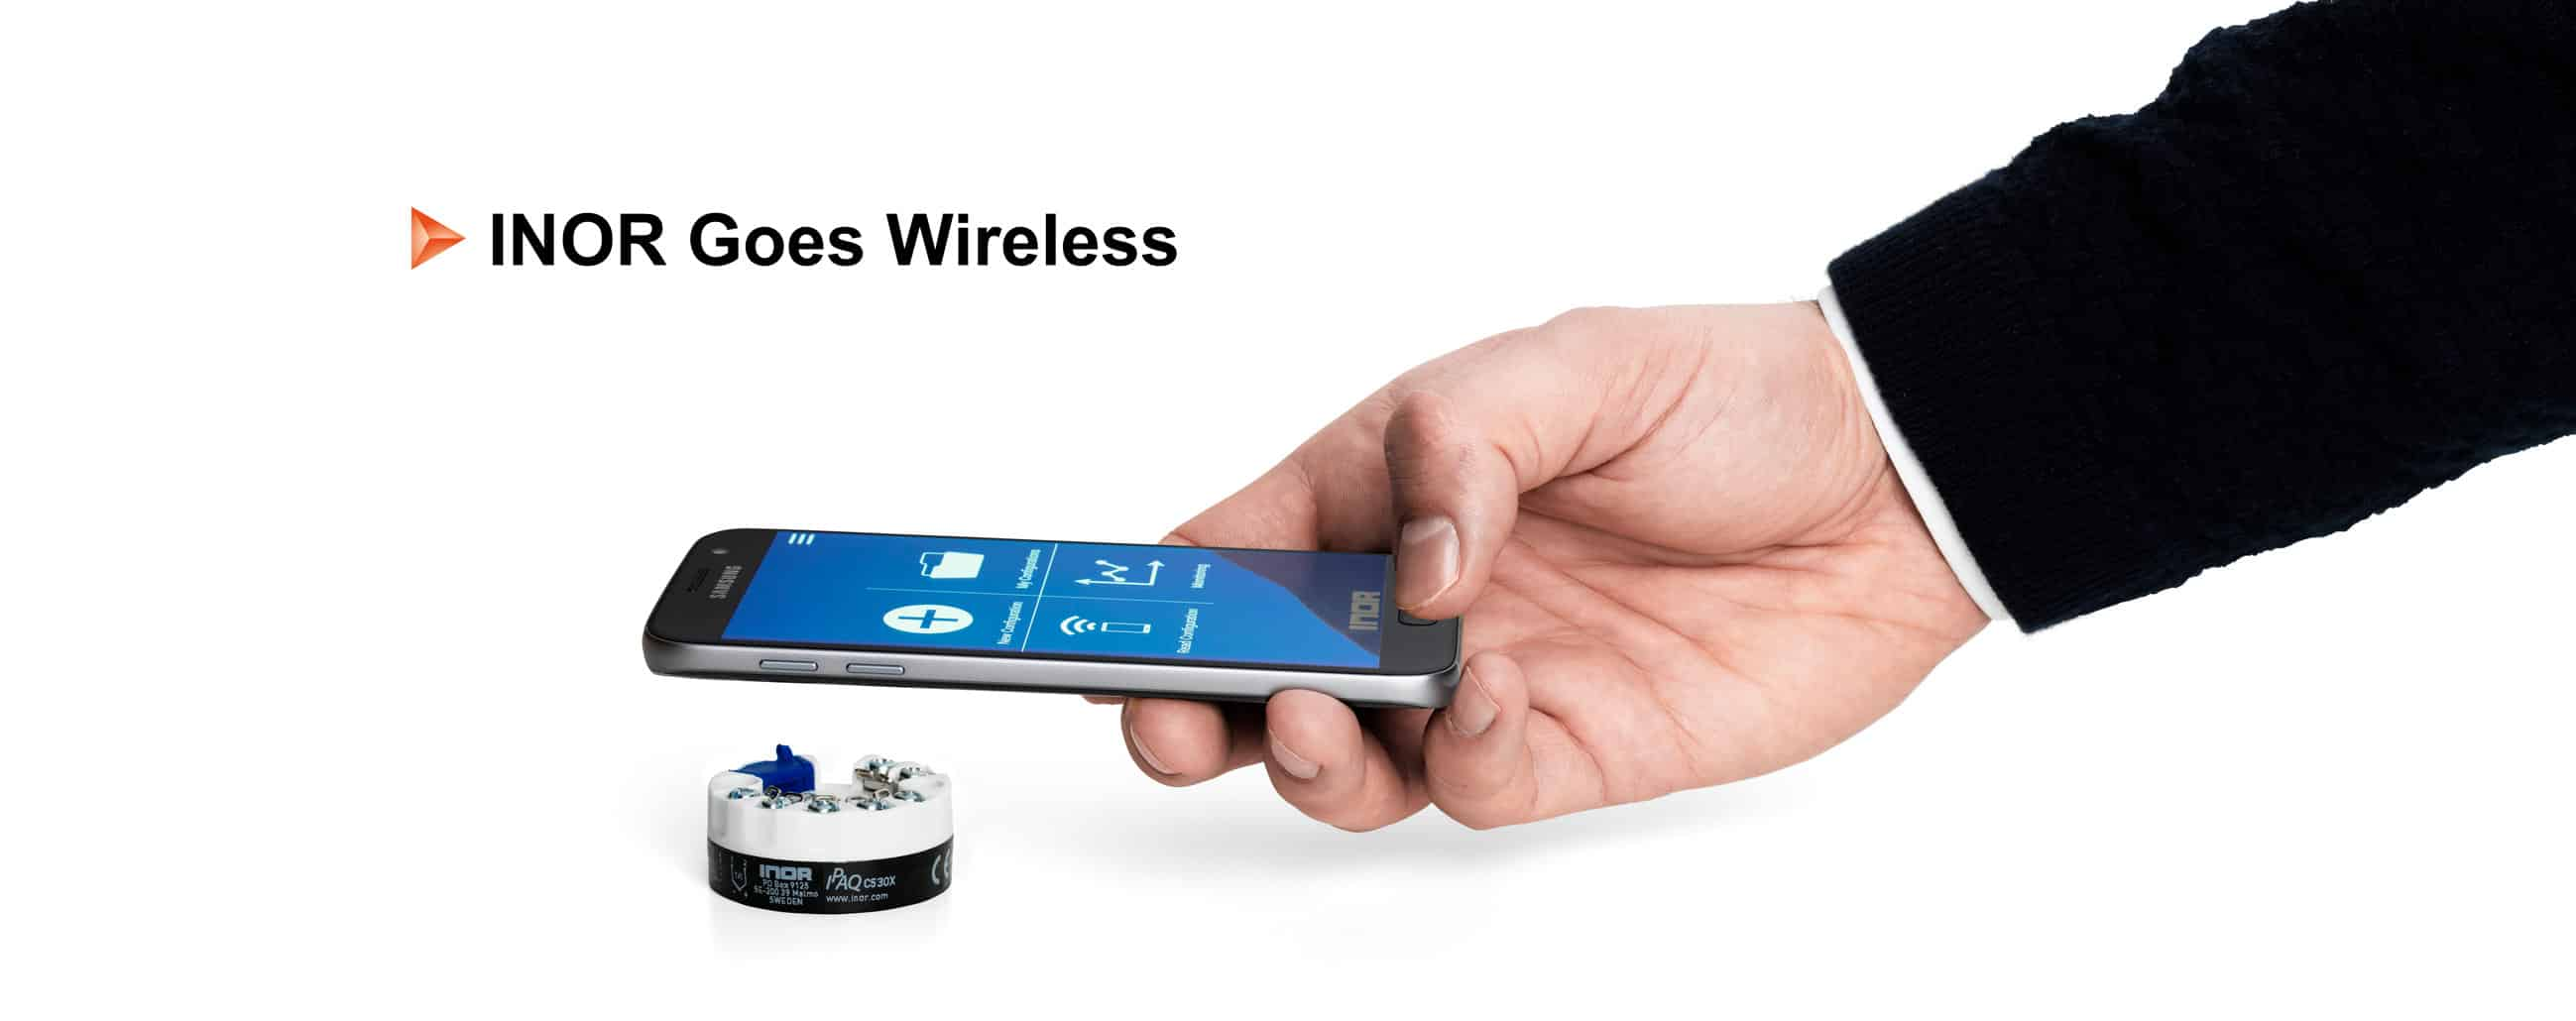 INOR Goes Wireless Concept Header